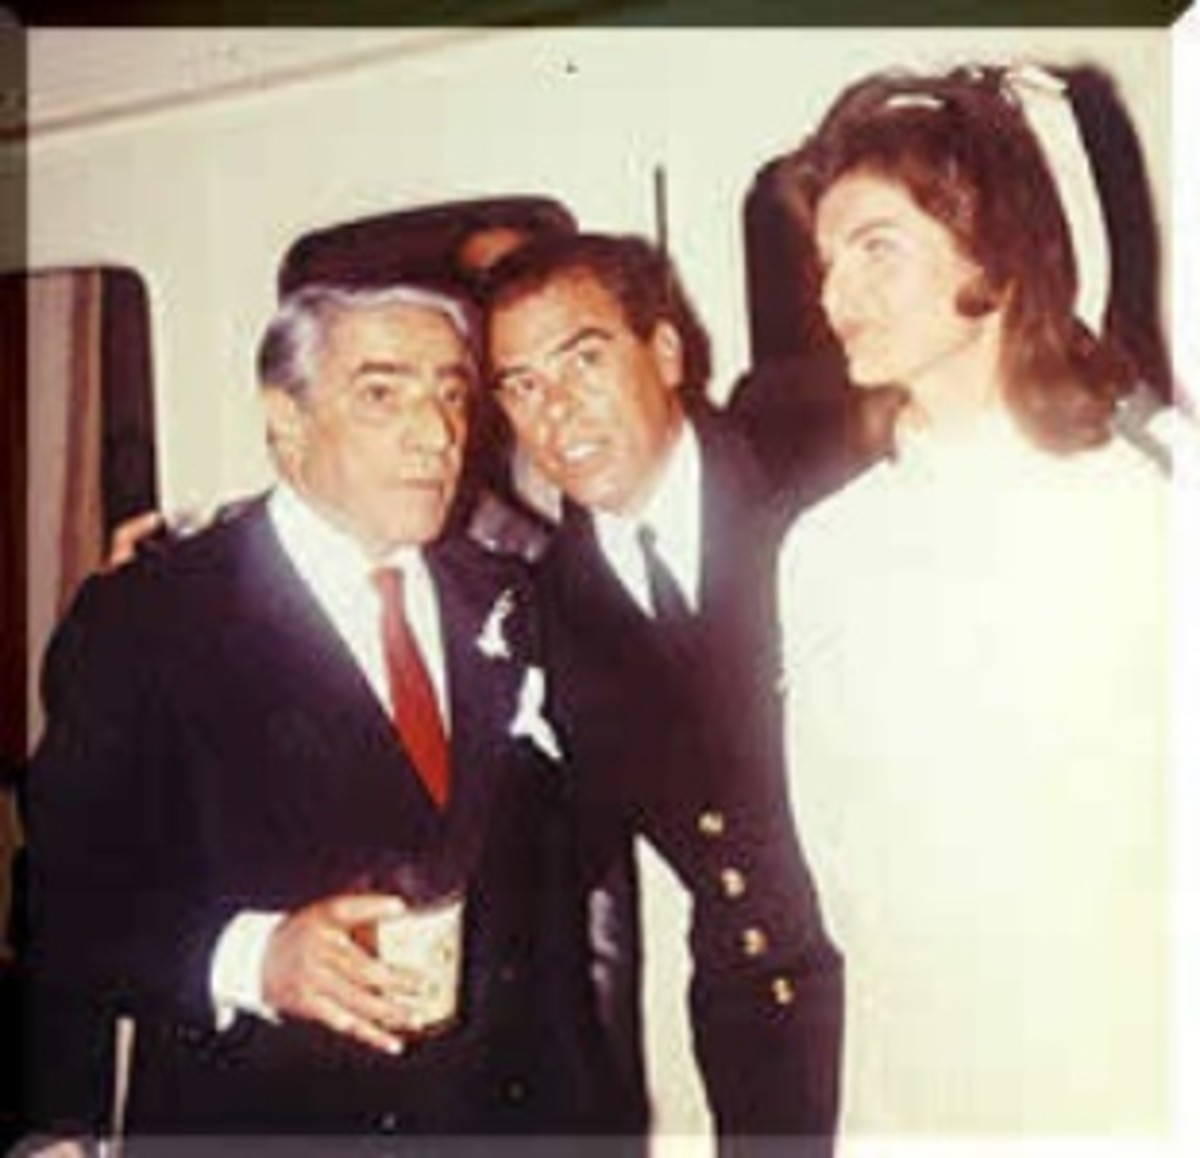 Aristotle Onasis and Jackie Kennedy on the Onasis Yacht